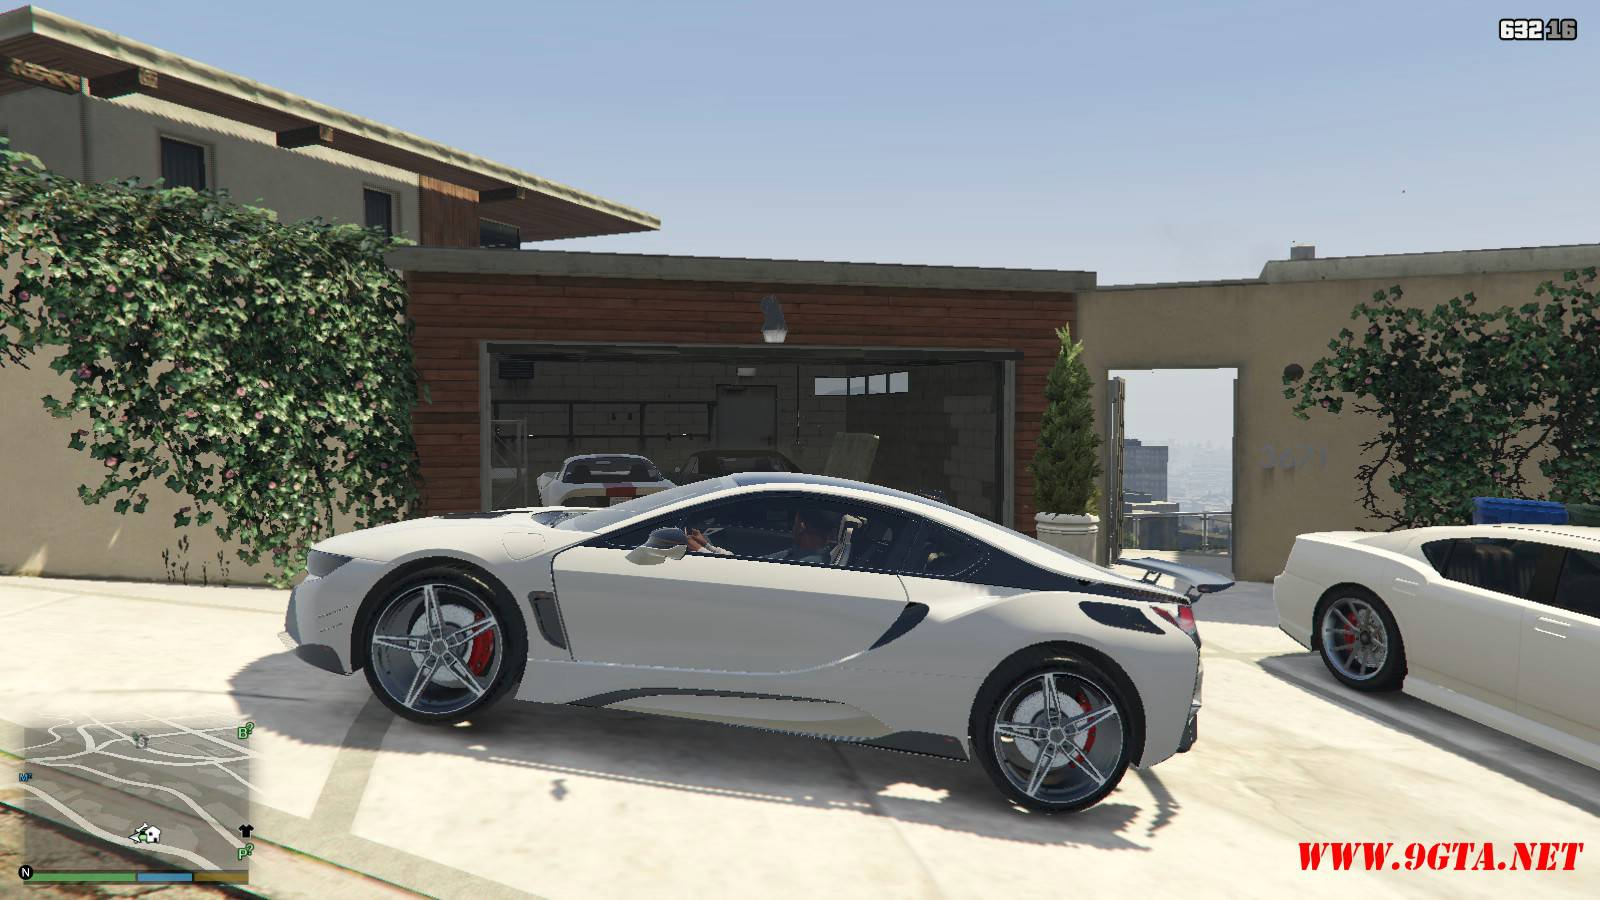 BMW i8 AC Schinitzer ACS8 Mod For GTA5 (2)